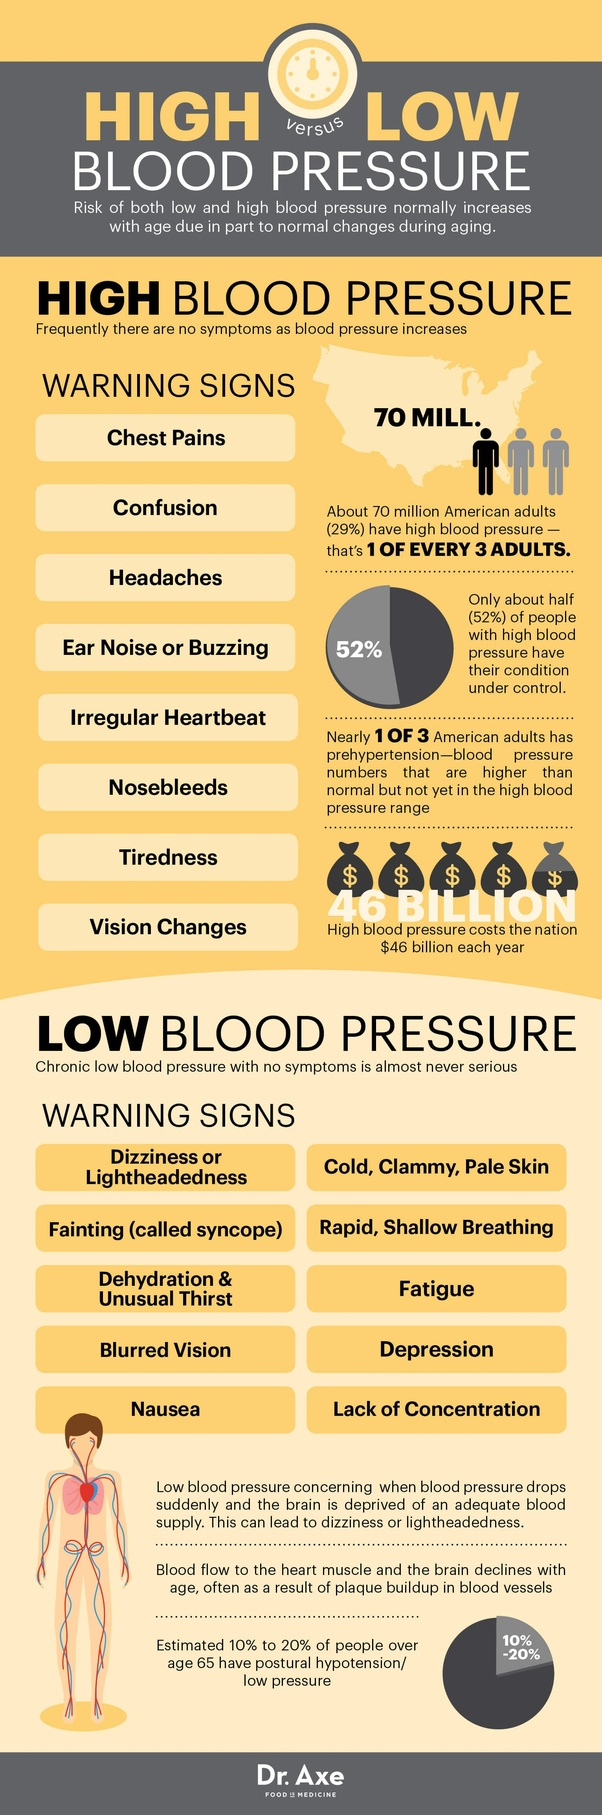 how to really know if you have low blood pressure quorachronic low blood pressure without symptoms is almost never serious